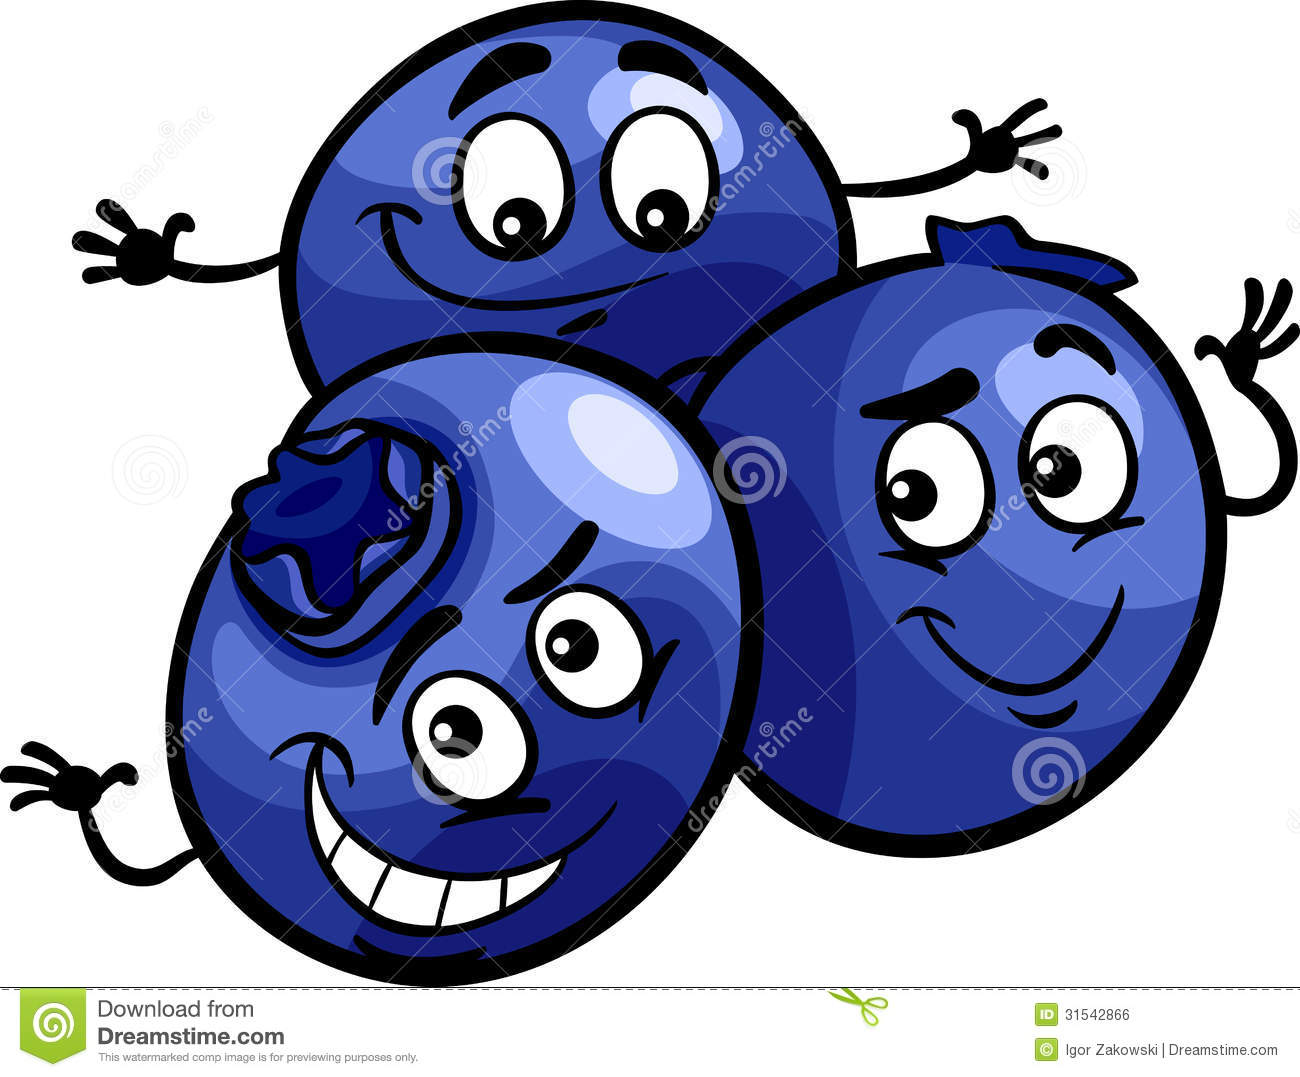 Animated pencil and in. Blueberry clipart happy